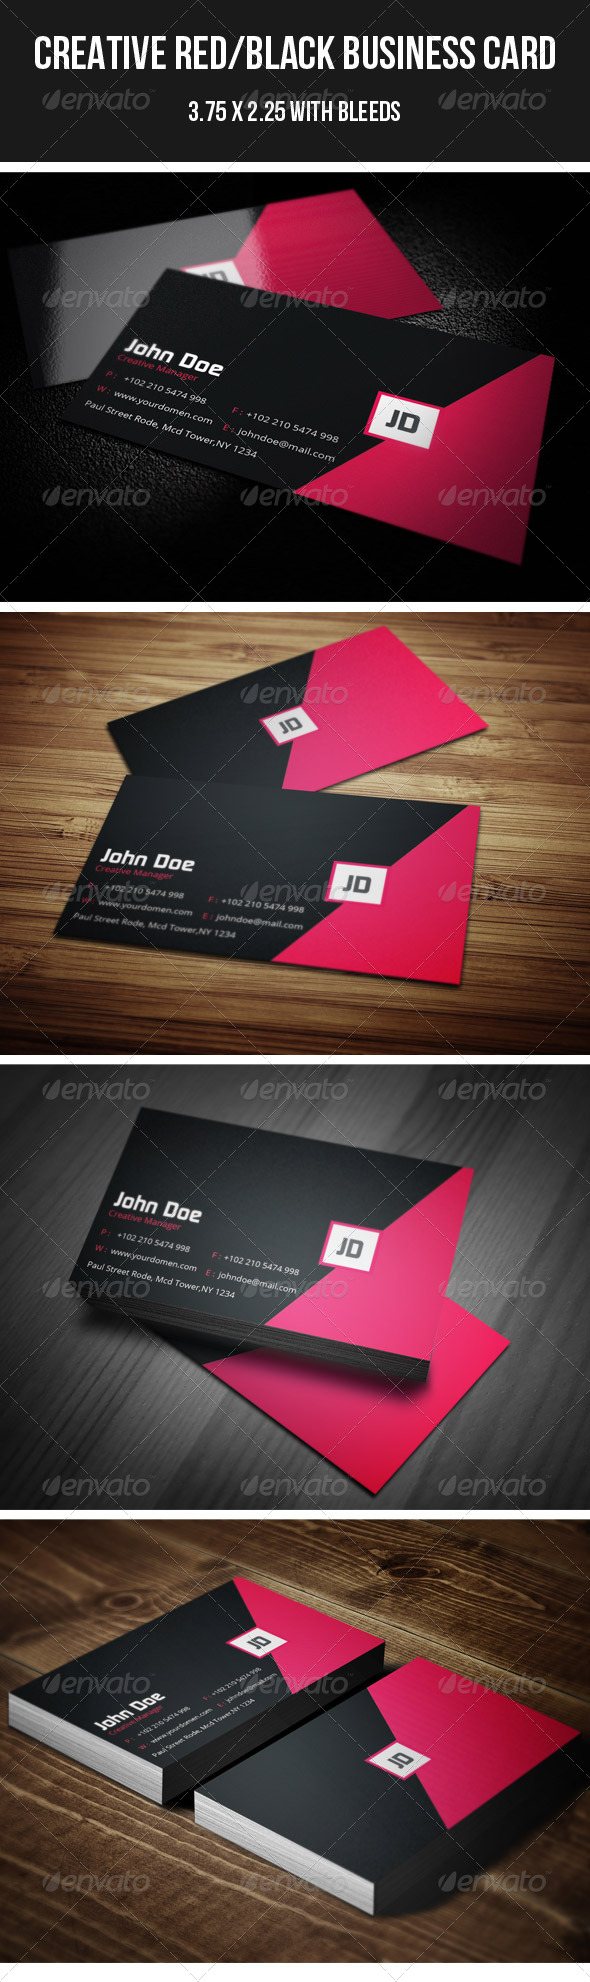 GraphicRiver Creative Red Black Business Card 37 4401998